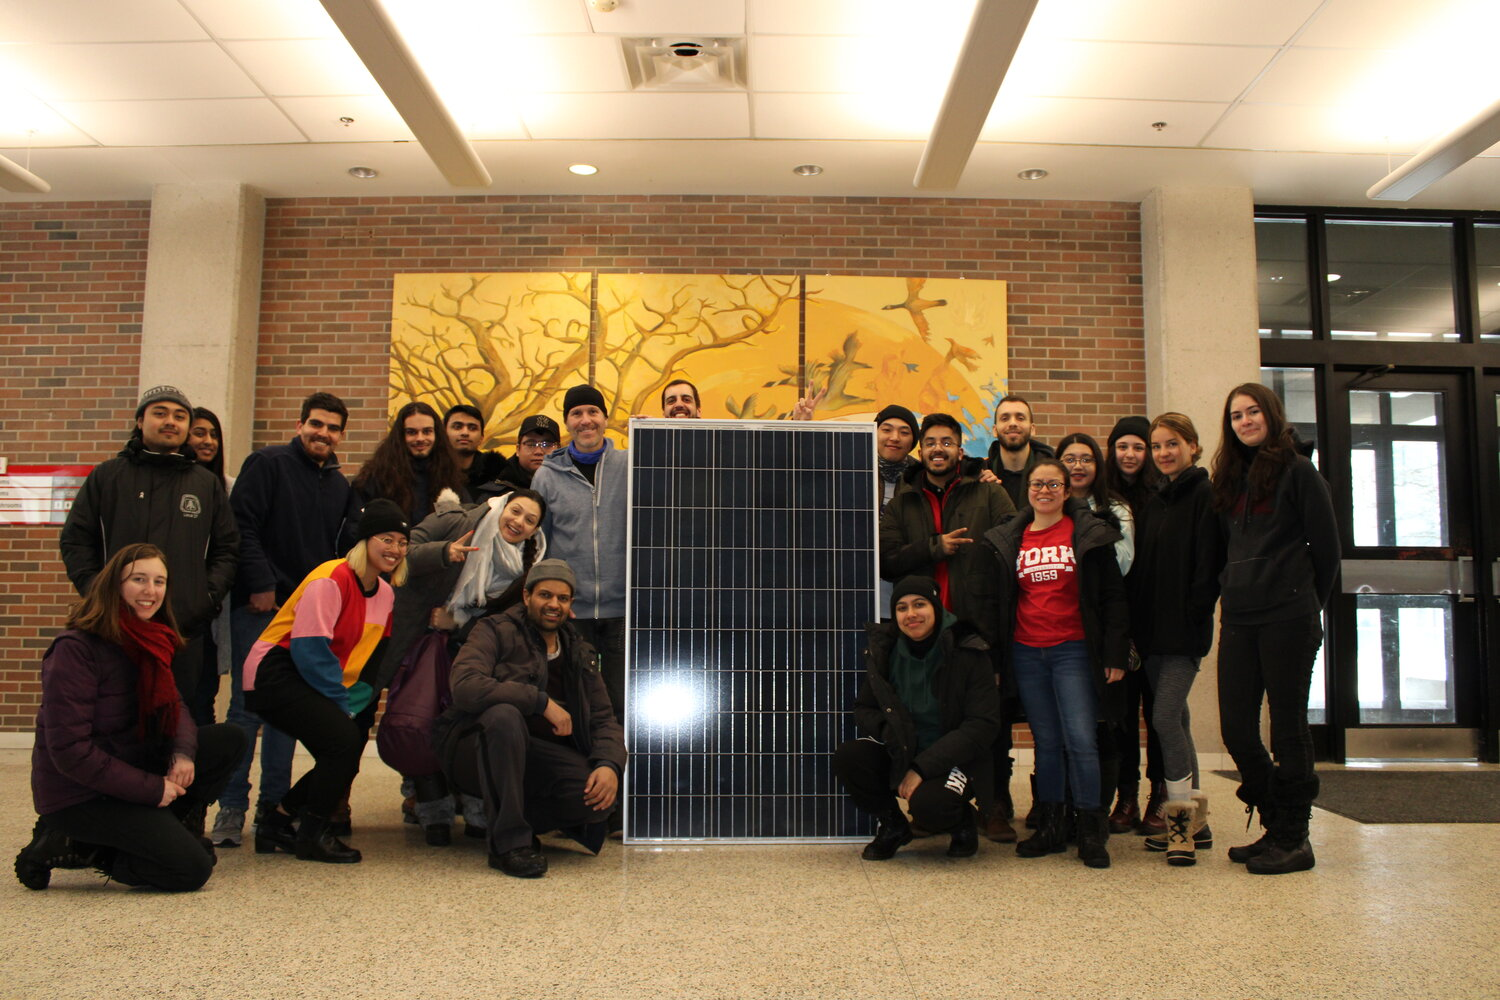 Students and faculty pose during a solar panel installation February 29th, 2020. Photo credit: Codrina Ibanescu